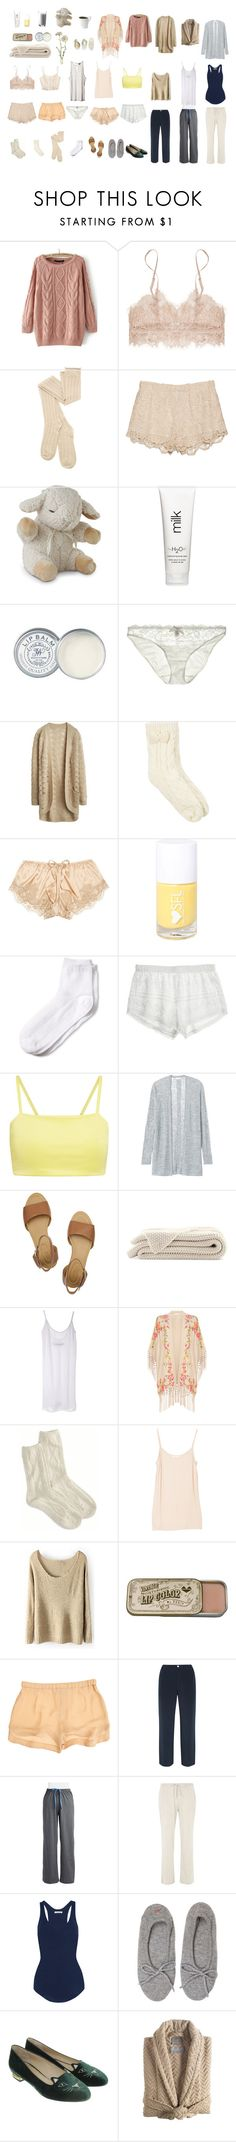 loungewear by tguillory on Polyvore featuring Rebecca Taylor, Étoile Isabel Marant, Enza Costa, Hue, Dorothy Perkins, Sleepy Jones, Monsoon, Joie, A.L.C. and Kassatex